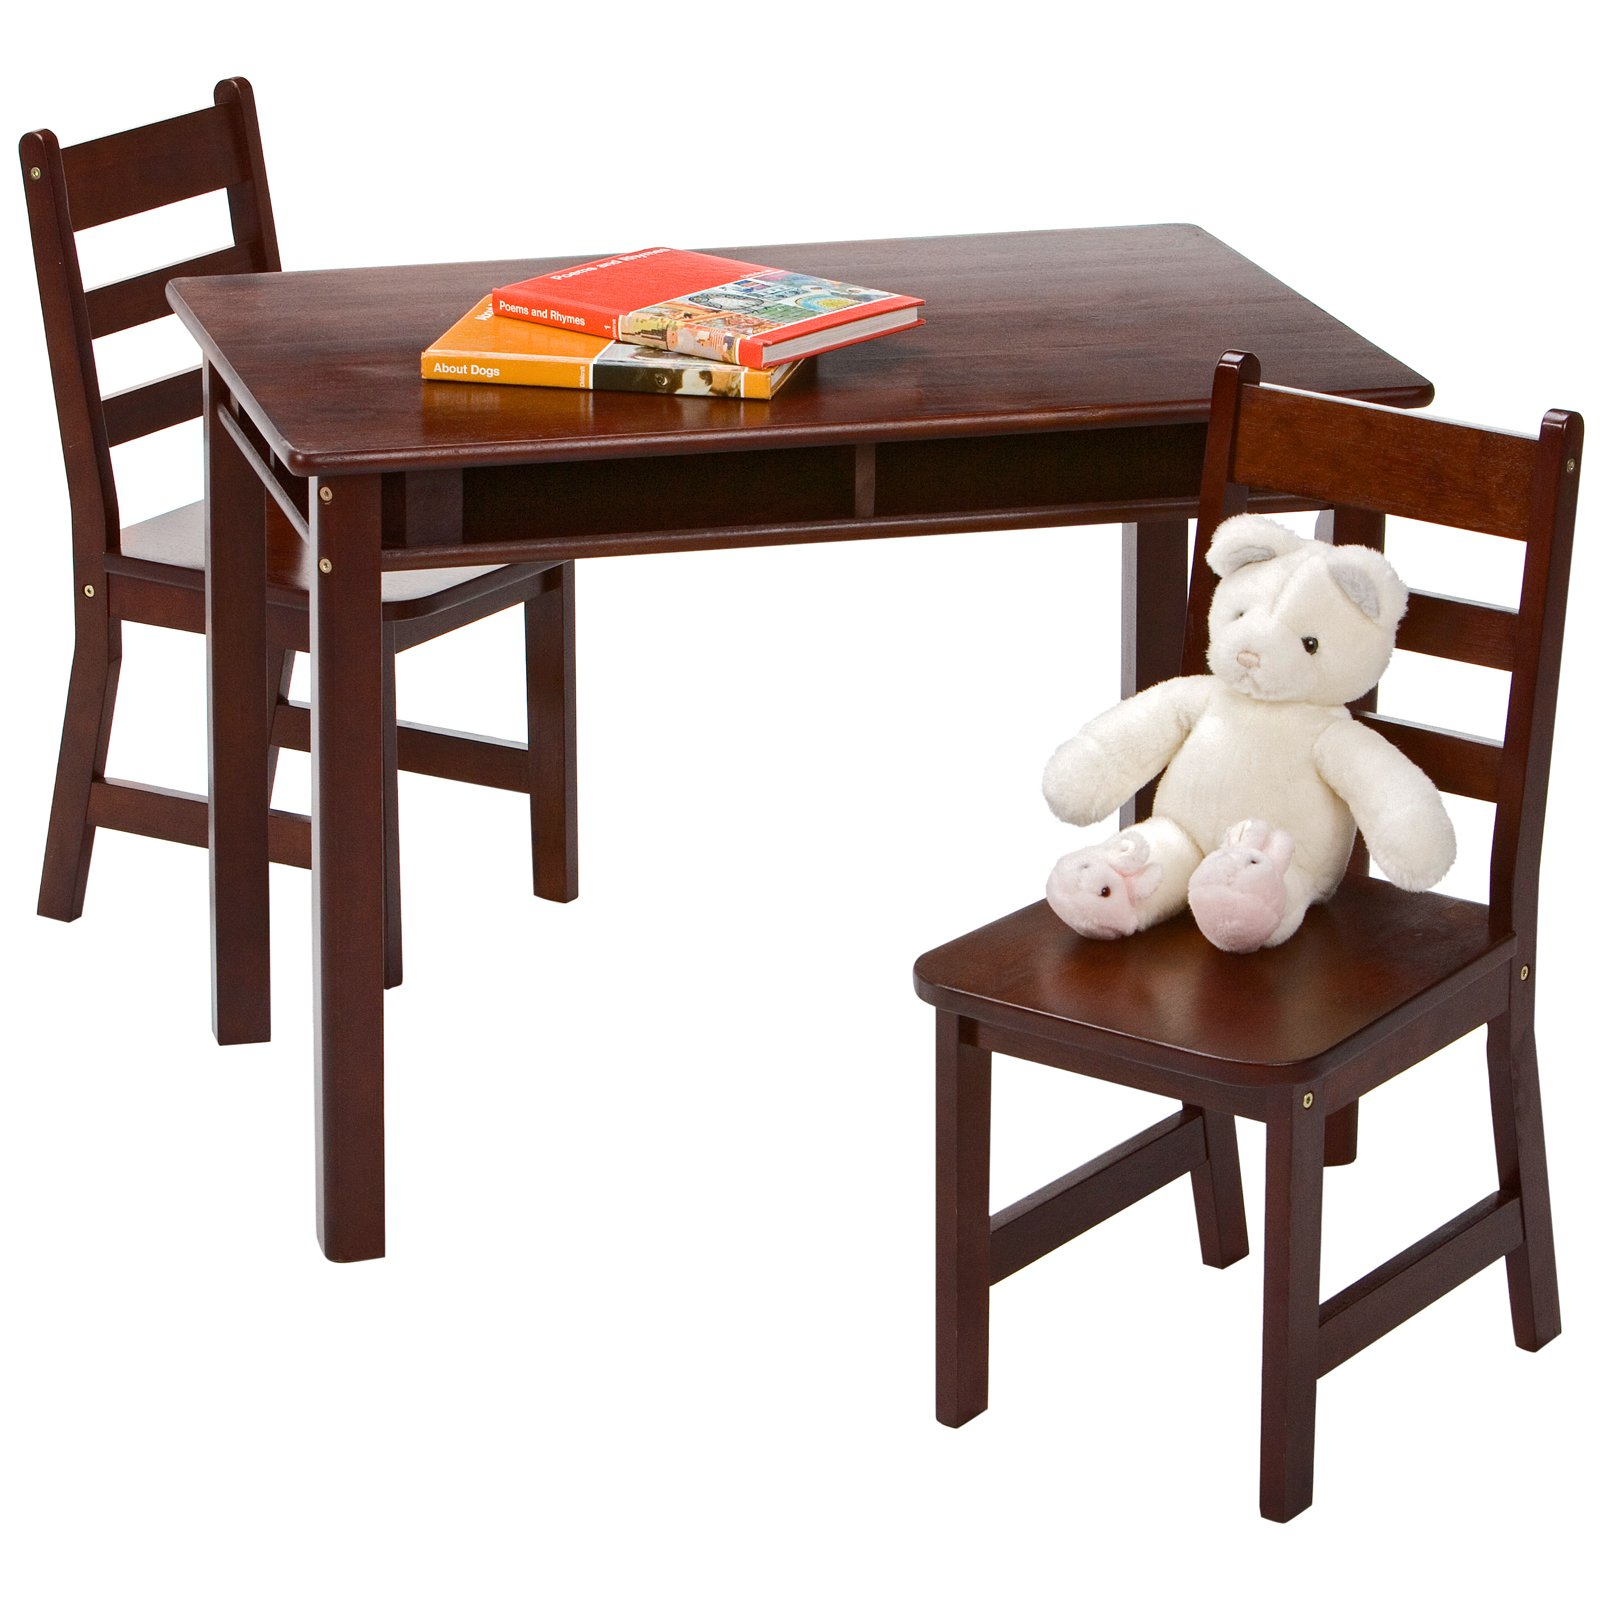 Childrens Table And Chair Set Lipper Childrens Rectangular Table And Chair Set